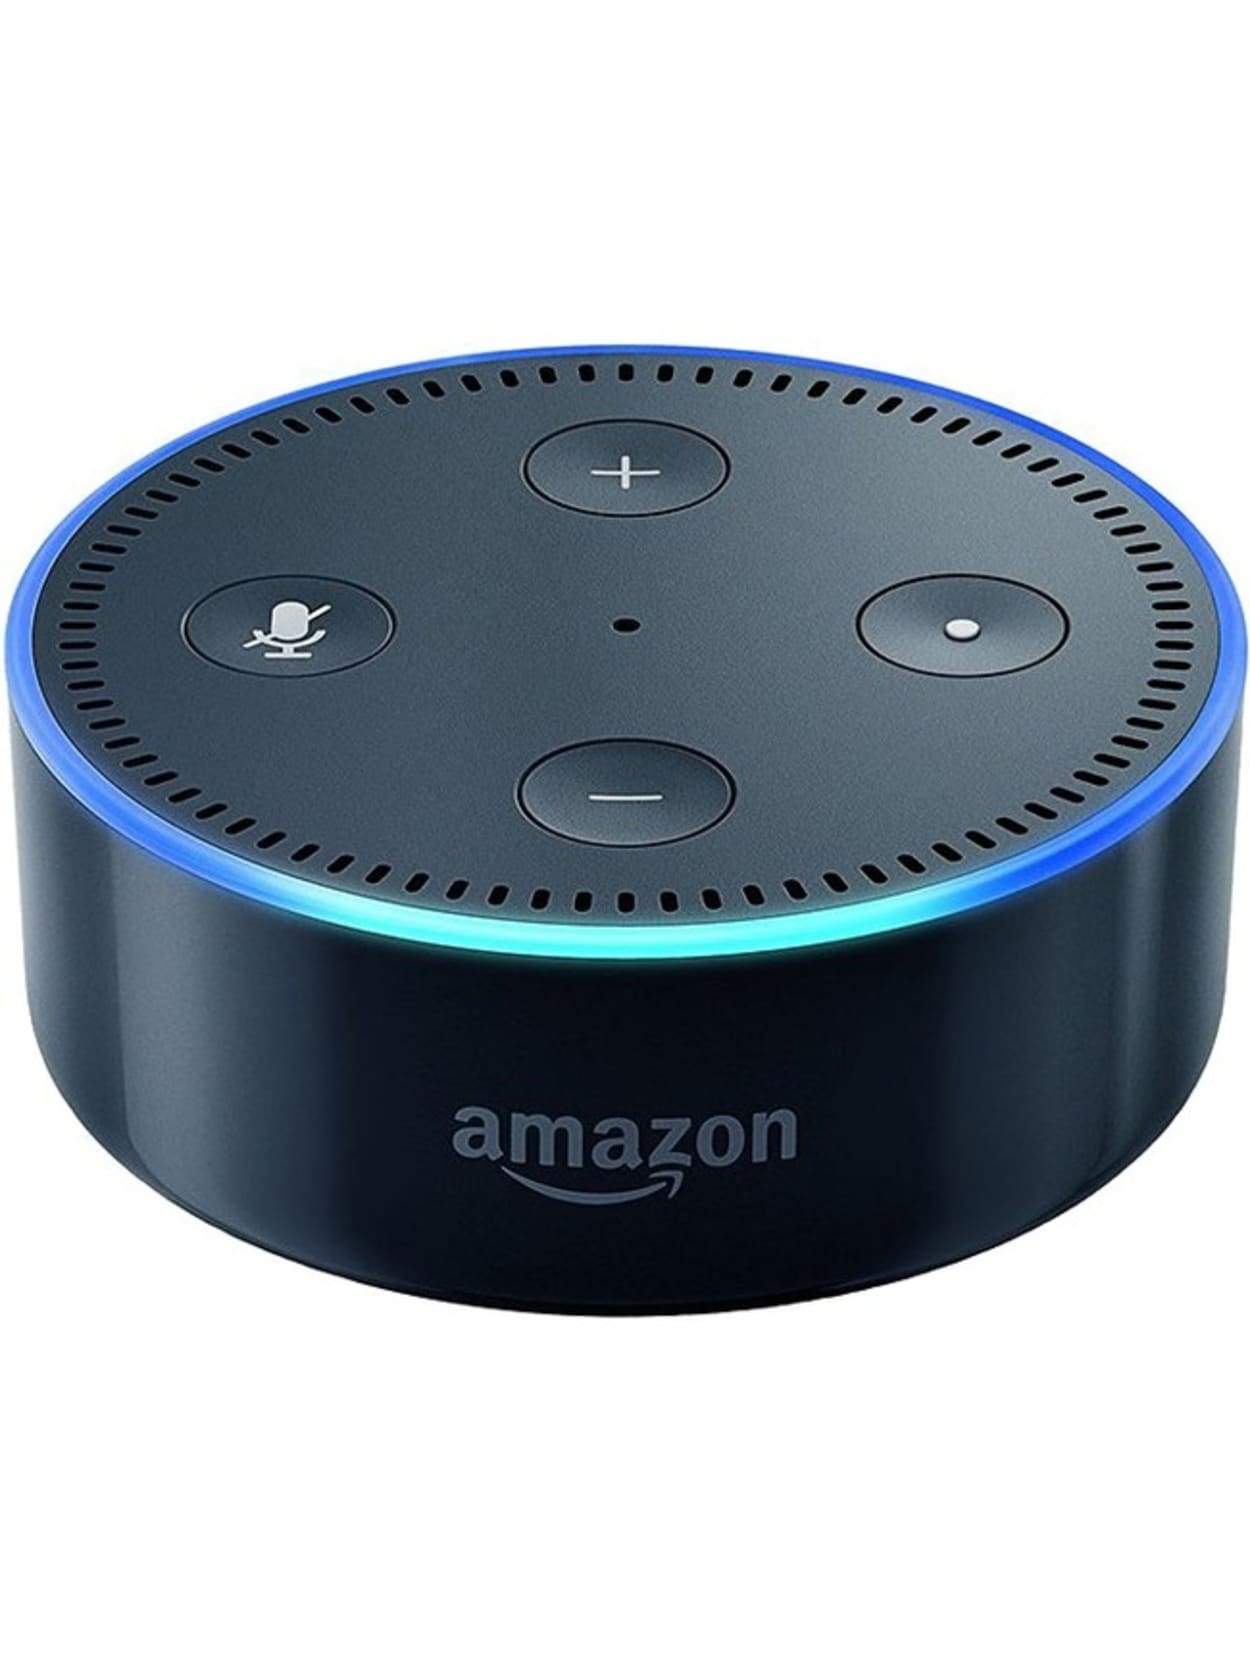 Amazon Echo Dot Smart Speaker with Alexa 2nd Generation